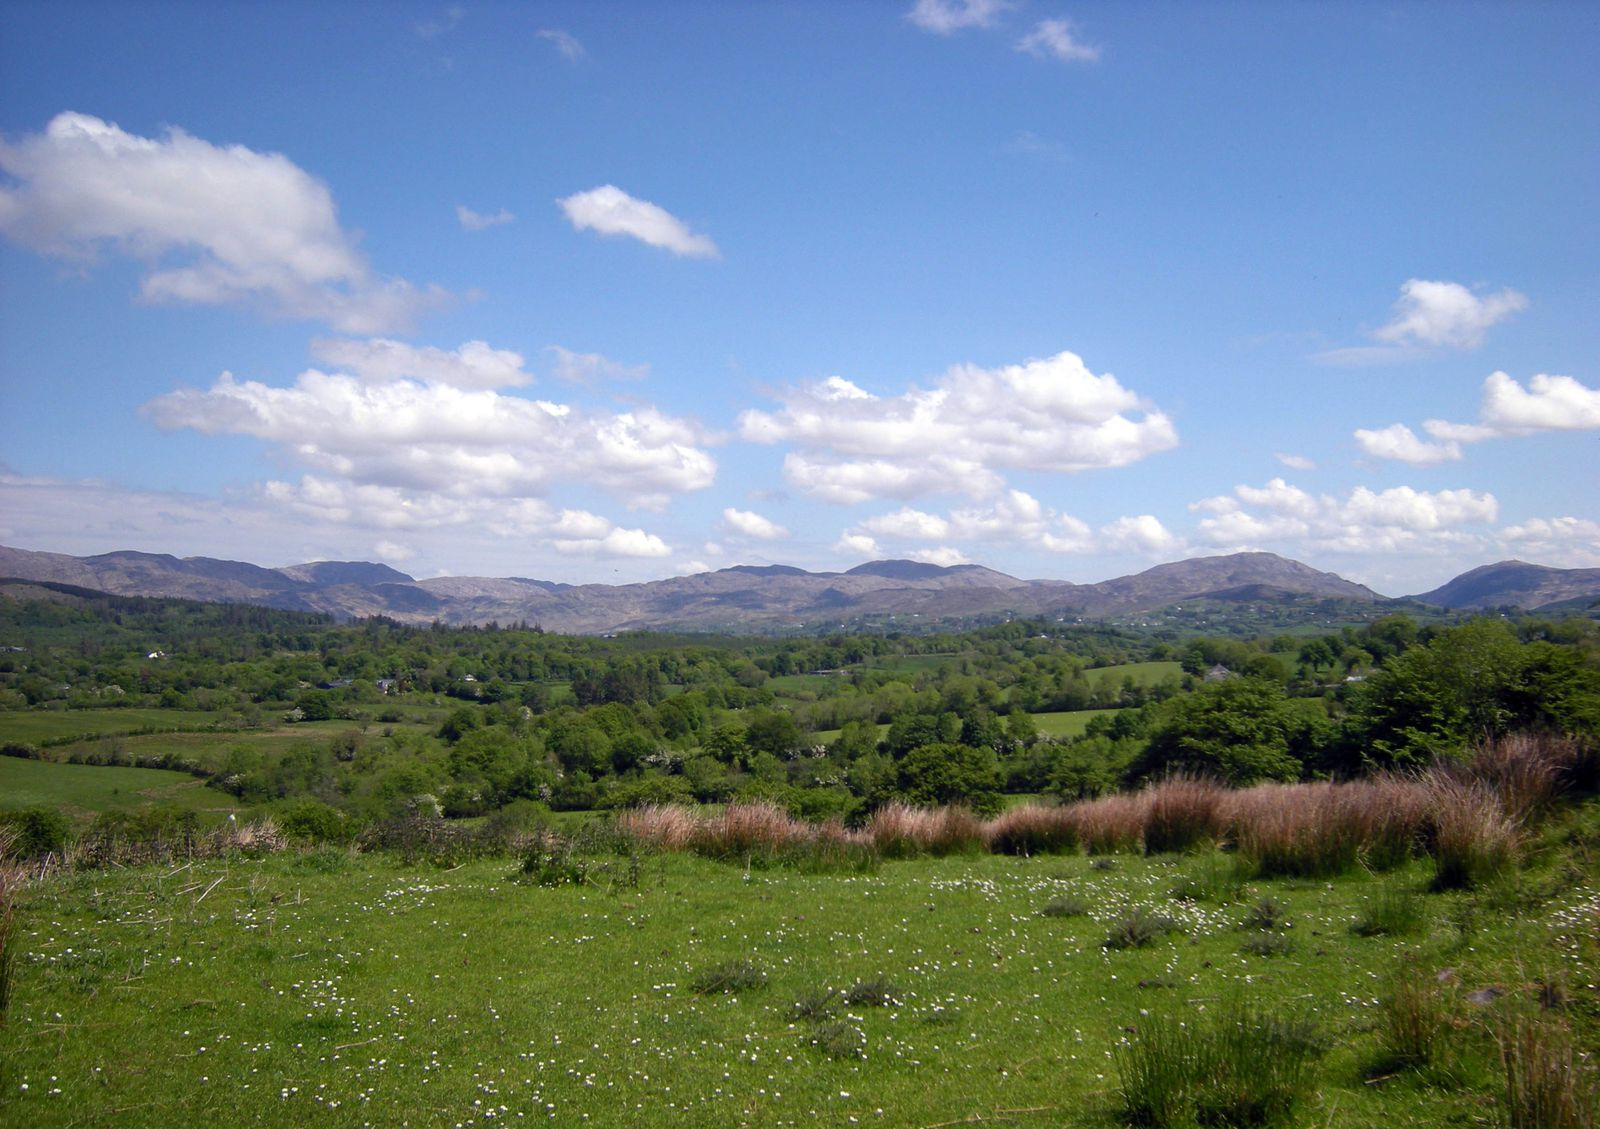 Donegal, Bluestack mountains, Lough Eske